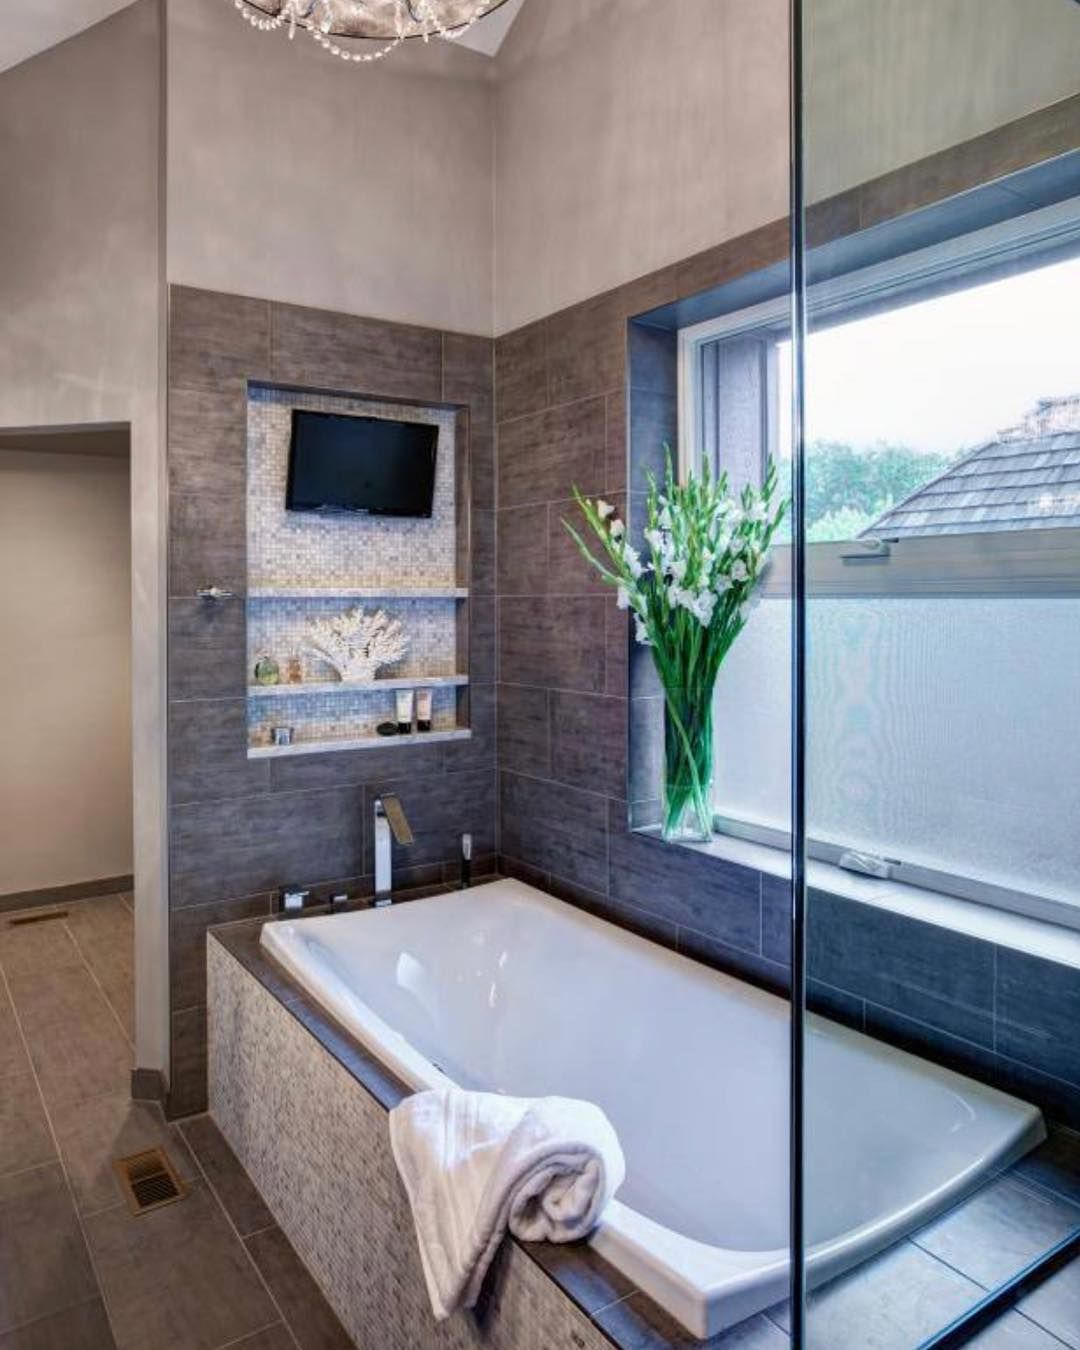 bathroom in a day. A Relaxing Hot Bath And Your Favorite TV Show Would Be Nice Way To End · Master BathroomsLuxurious BathroomsIn Bathroom In Day